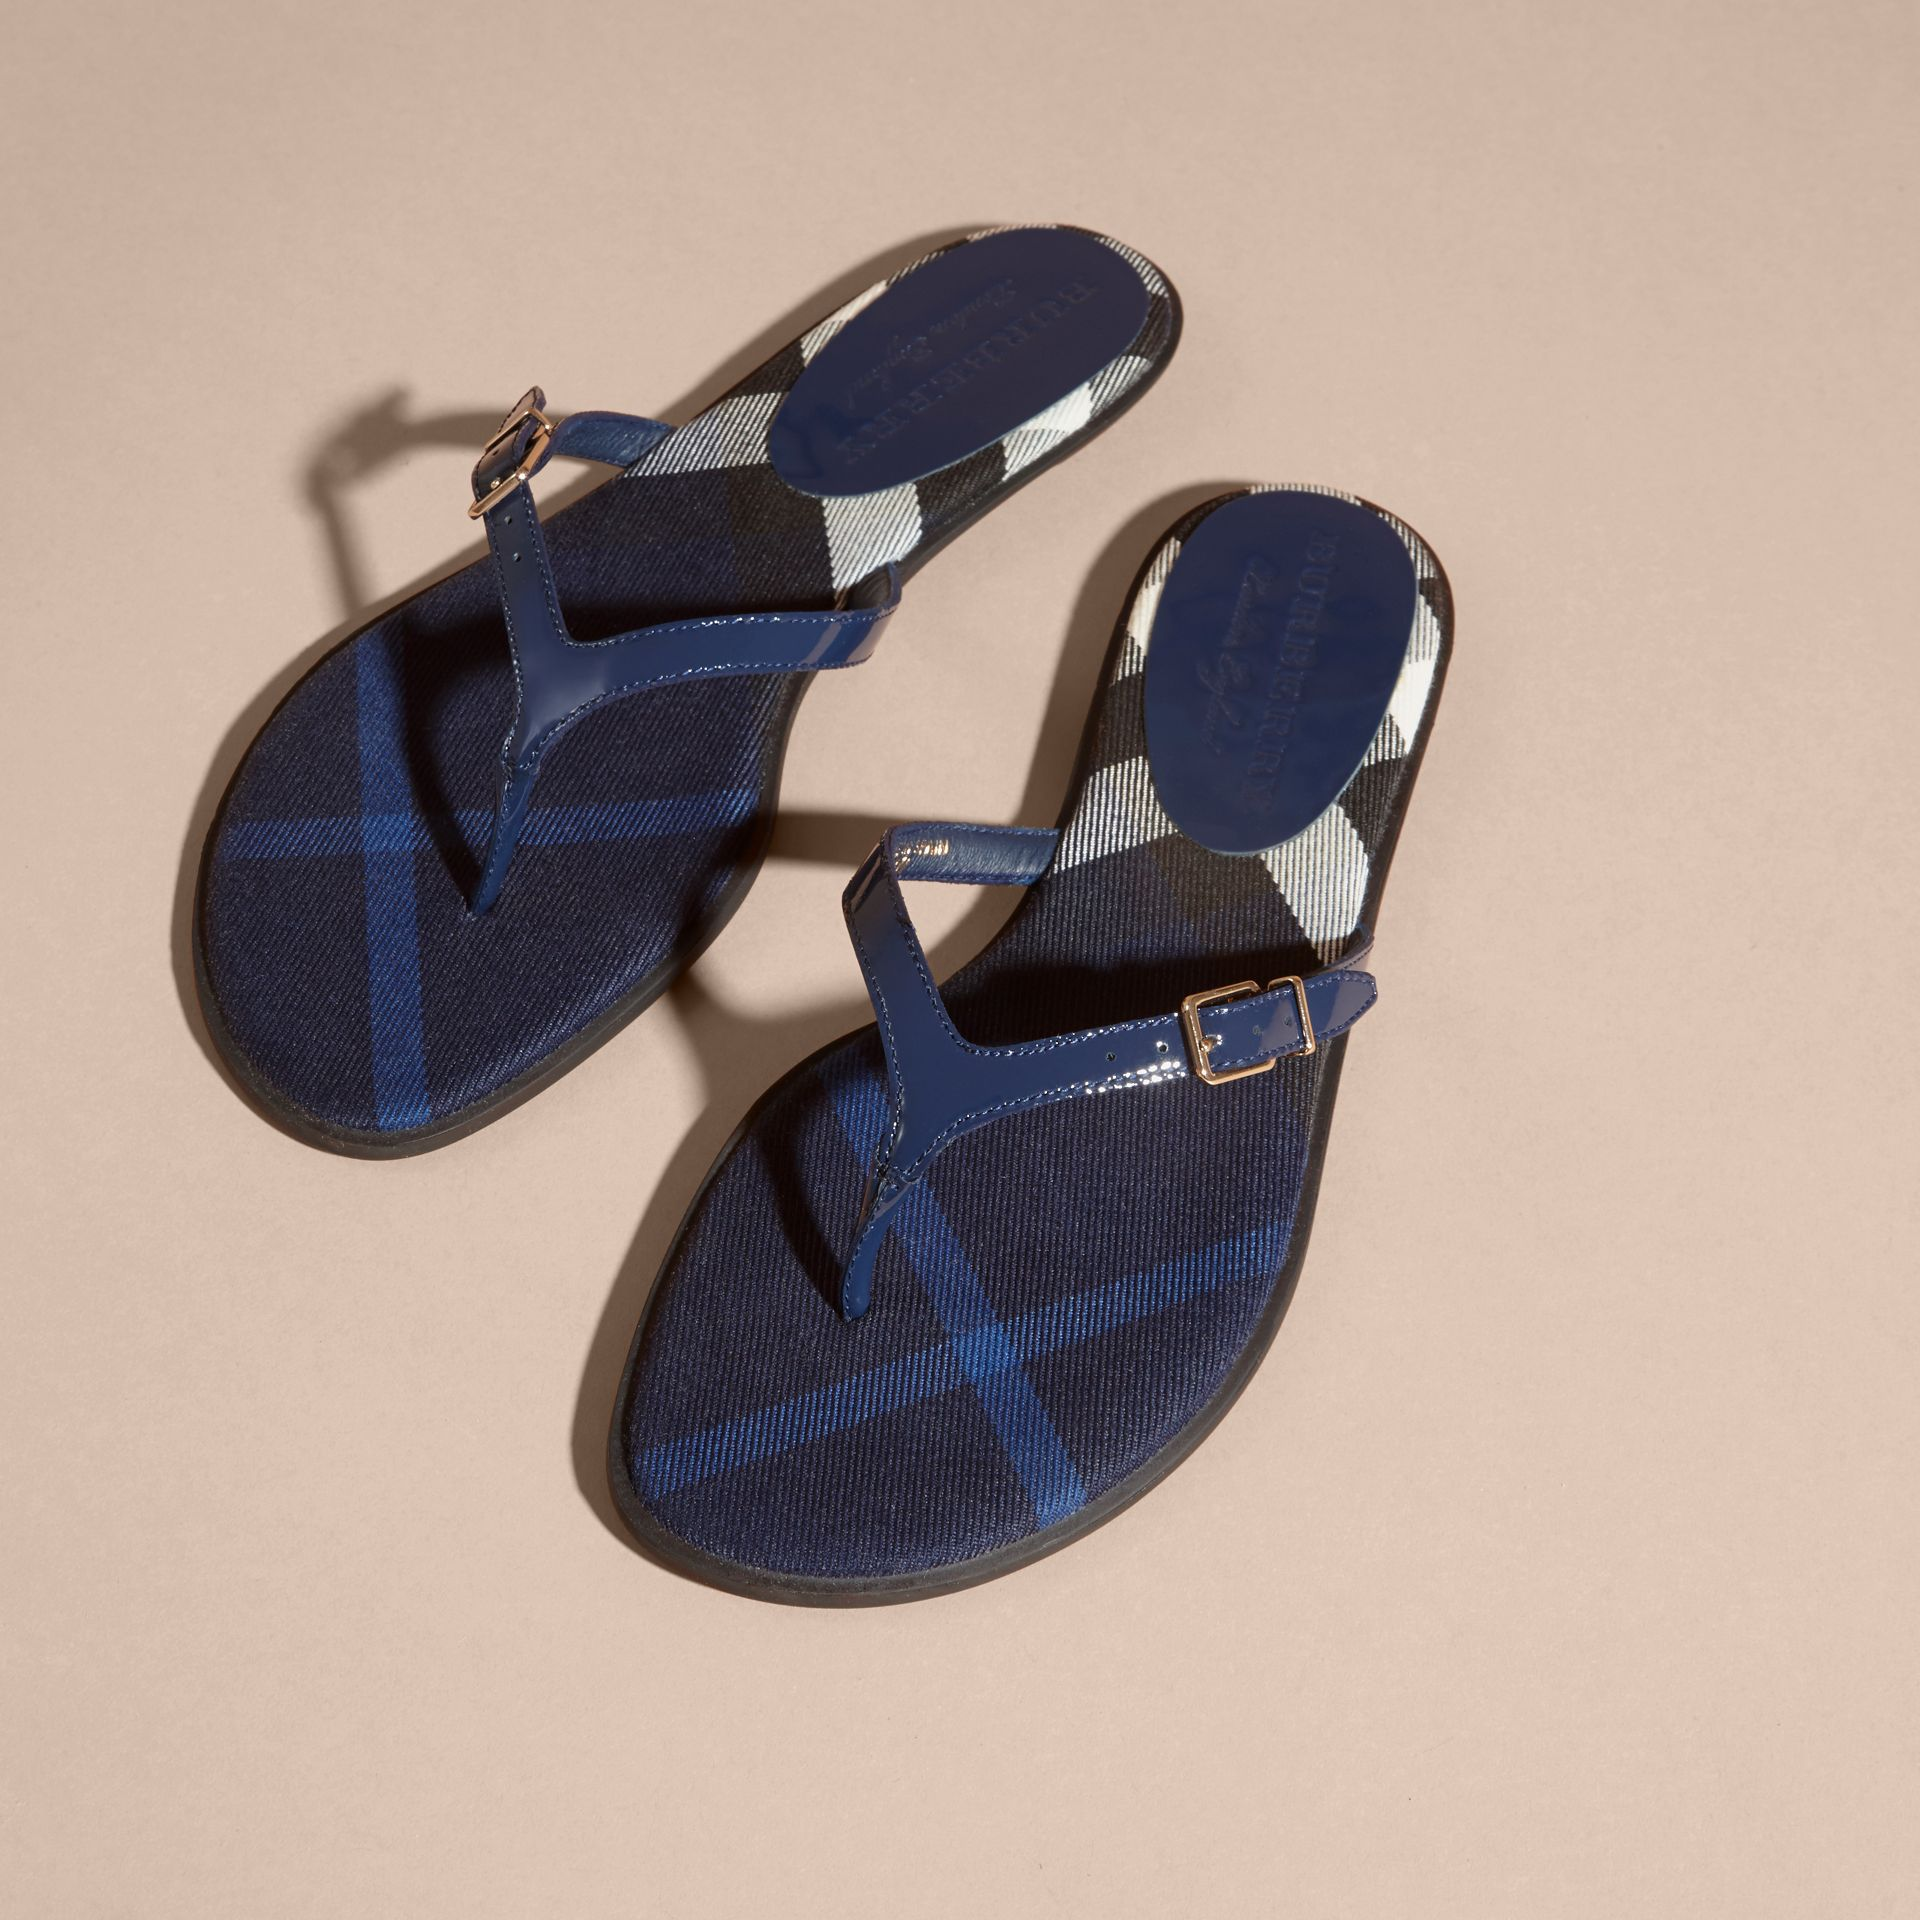 House Check and Patent Leather Sandals in Indigo Blue - Women | Burberry Singapore - gallery image 3